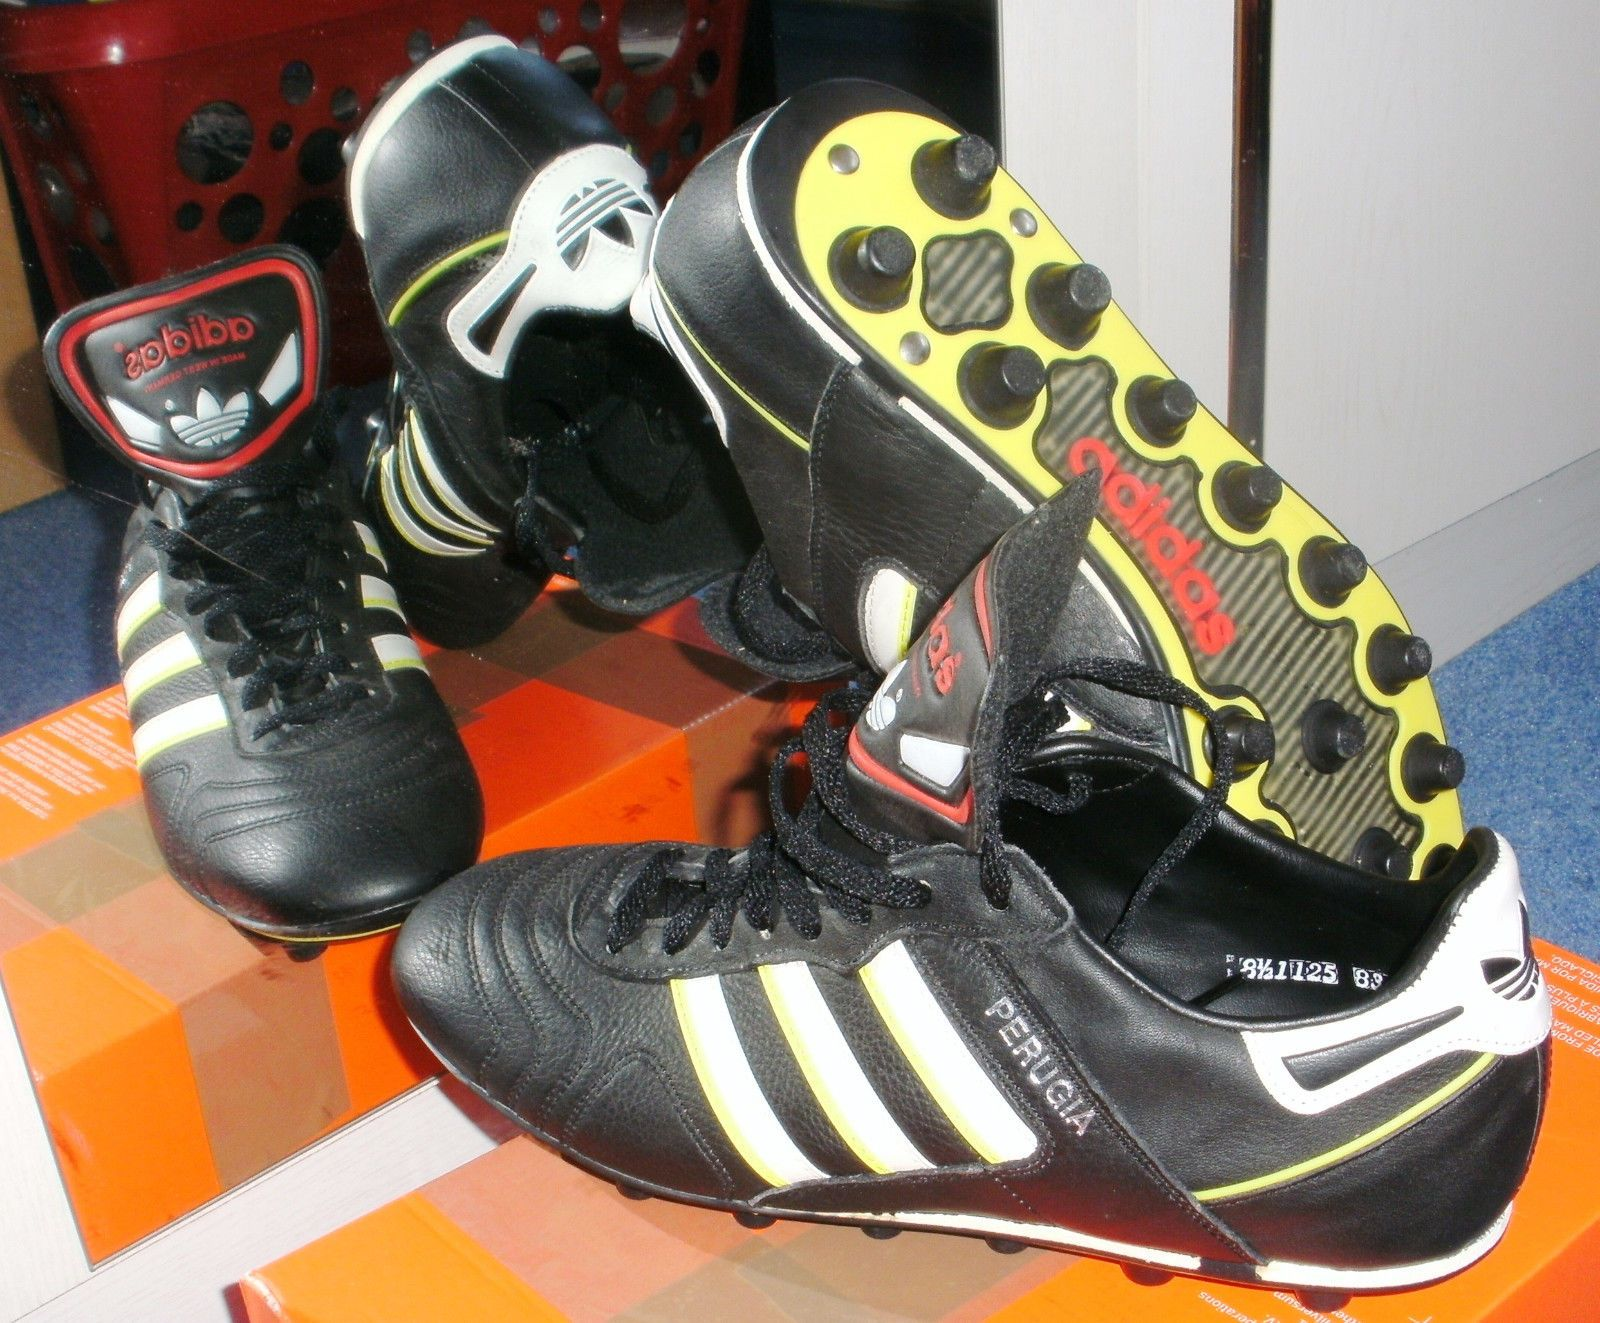 Pin By Chris Barber On Football In 2020 Football Boots Adidas Football Soccer Cleats